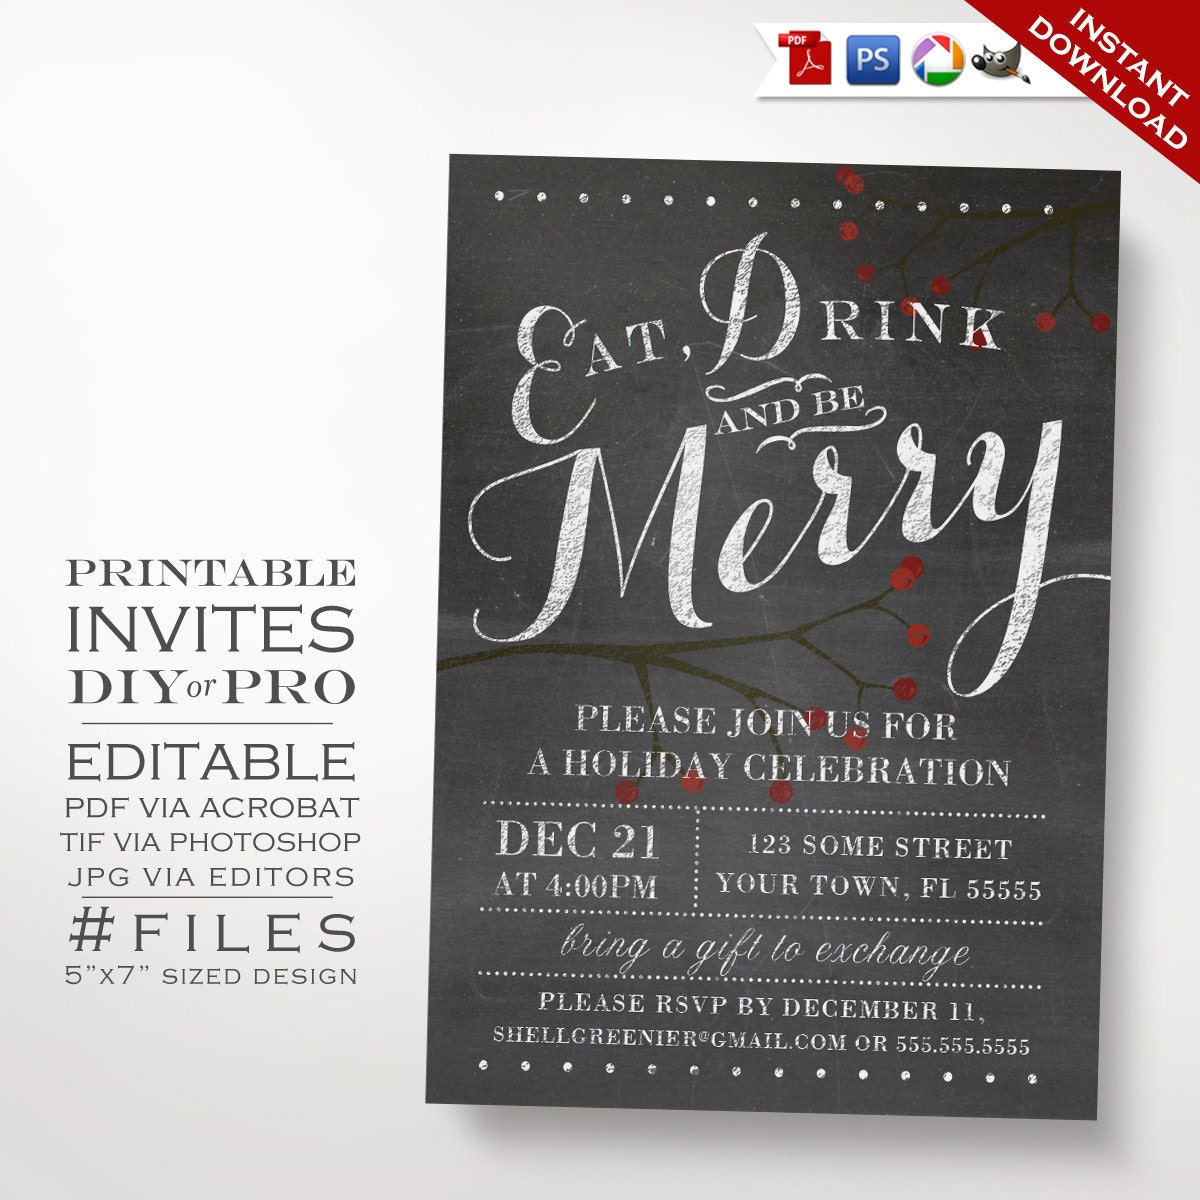 christmas invitation christmas invitation template winter chalkboard holiday party invitation printable diy christmas party invitation editable holiday event